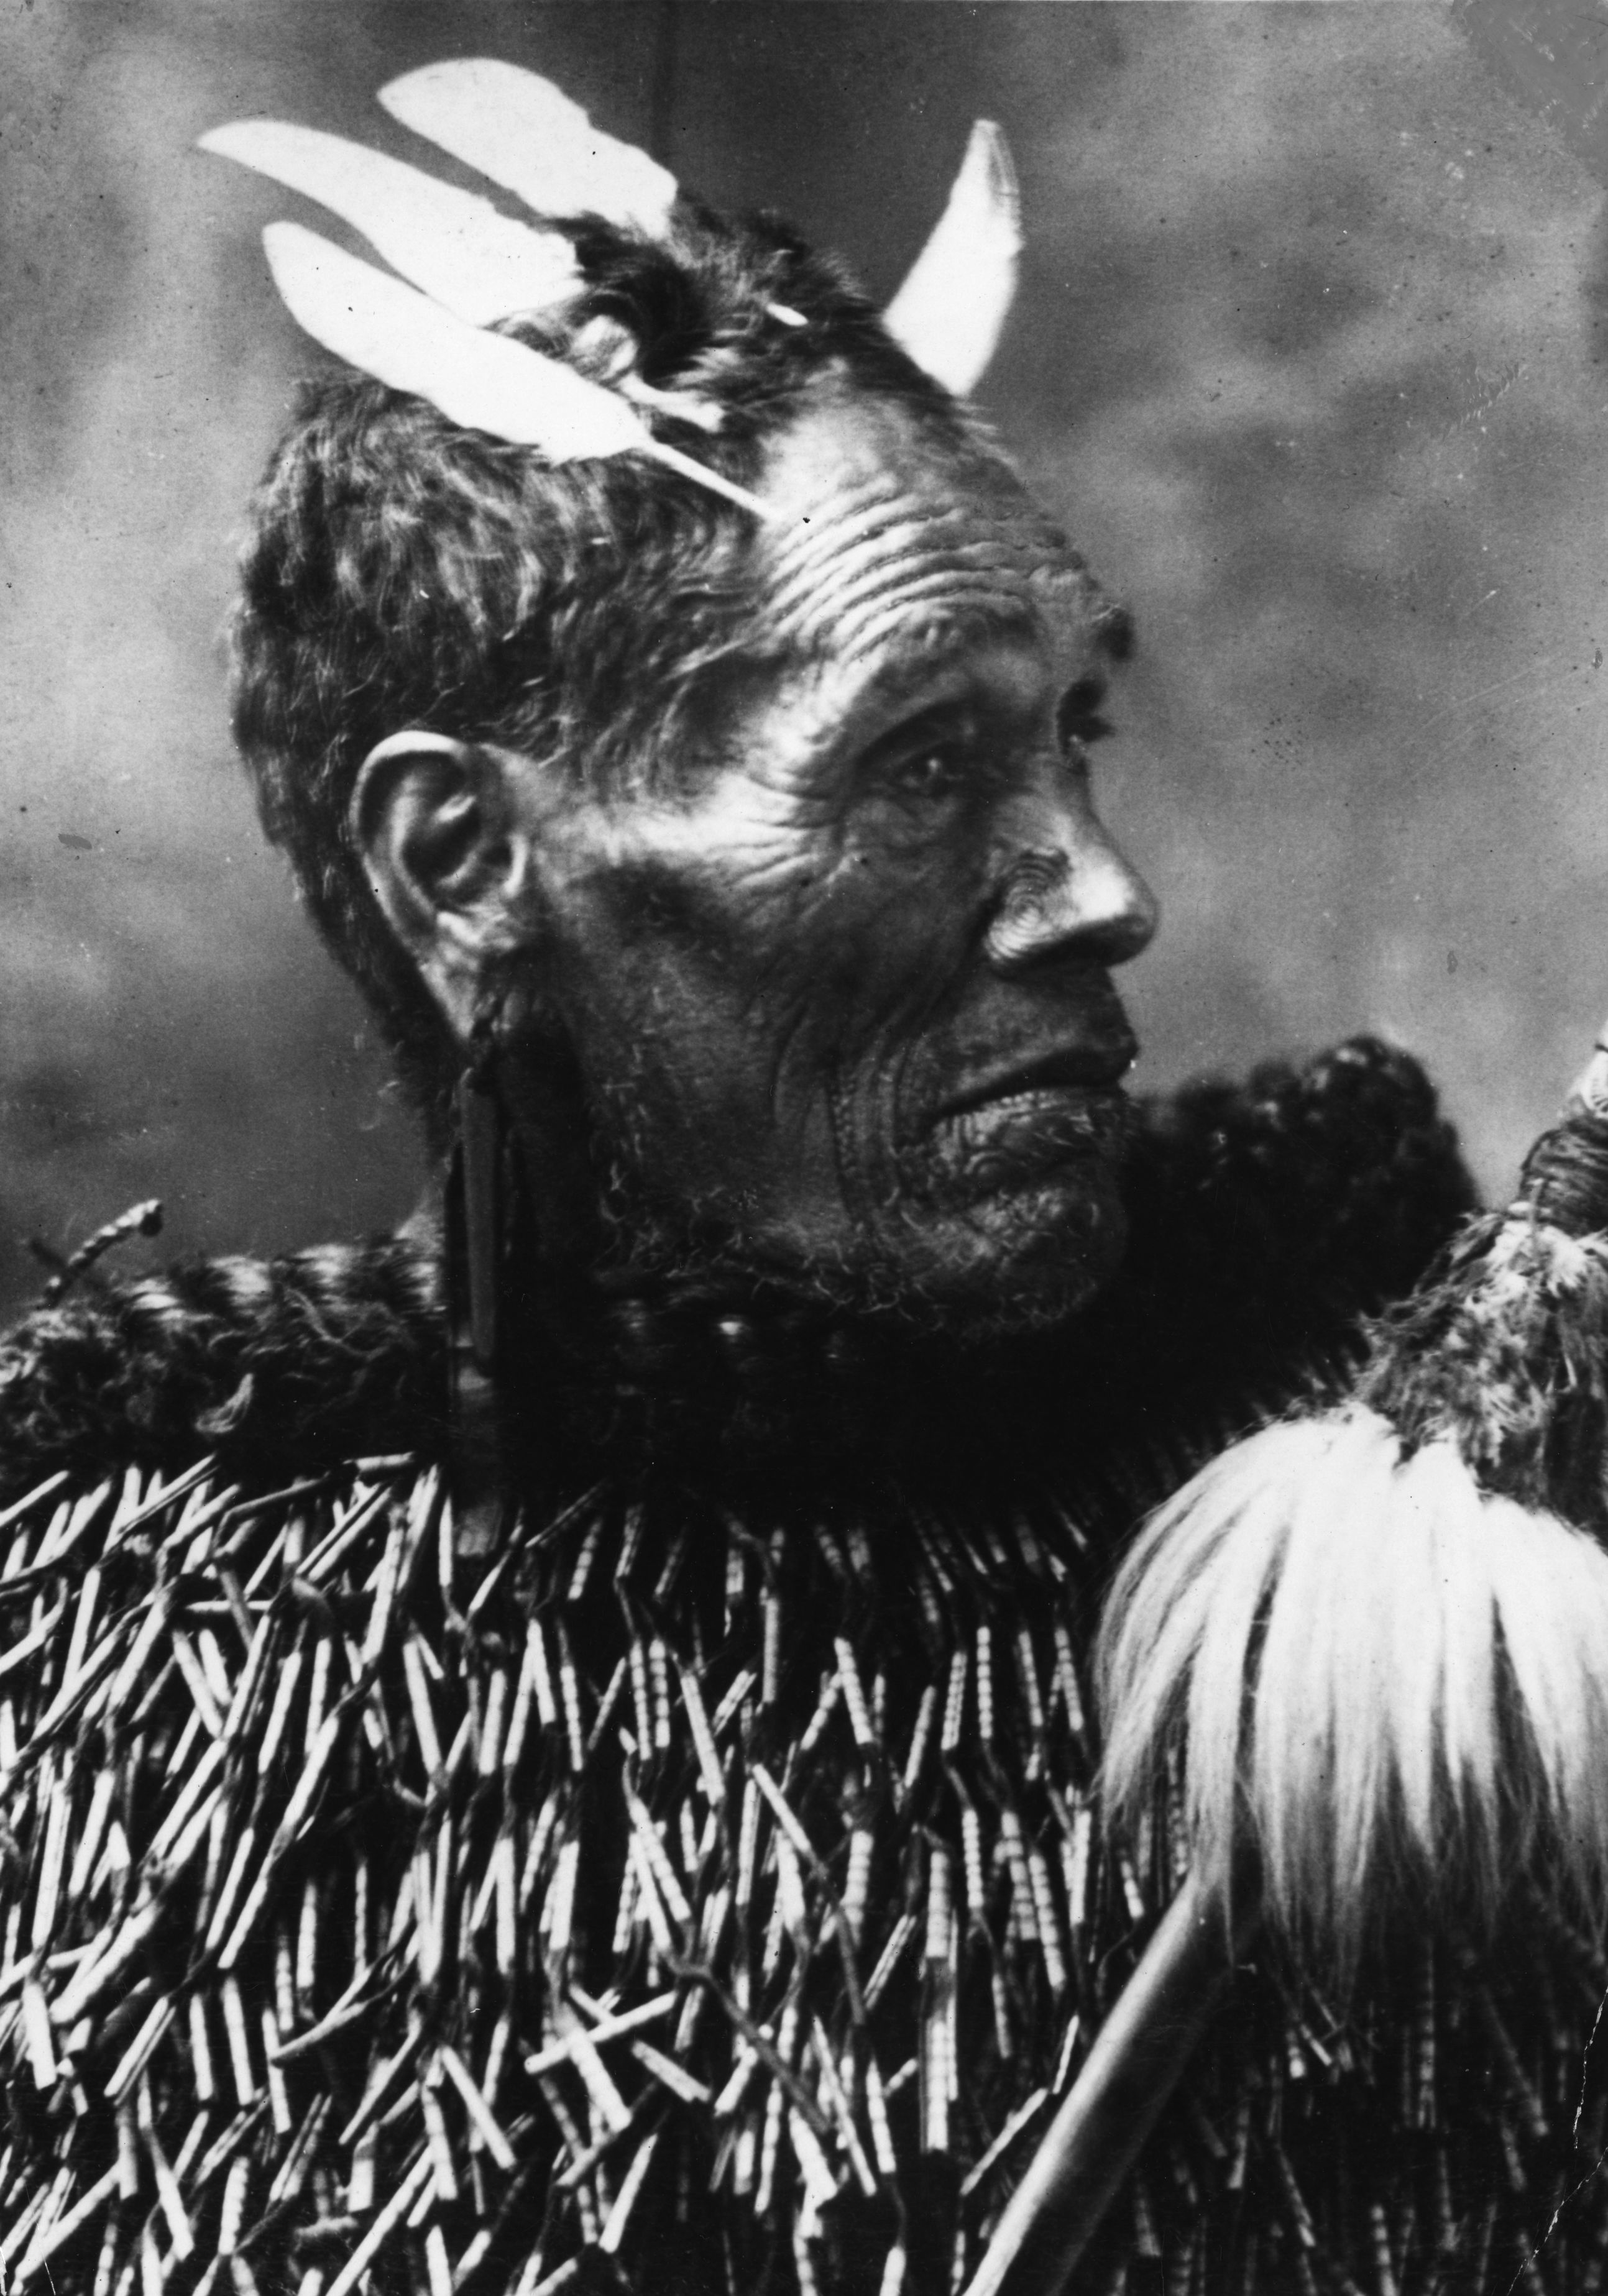 1870:  A Maori chieftain with tattooed chin and nose. He also wears earrings and has feathers in his hair.  (Photo by Hulton Archive/Getty Images)